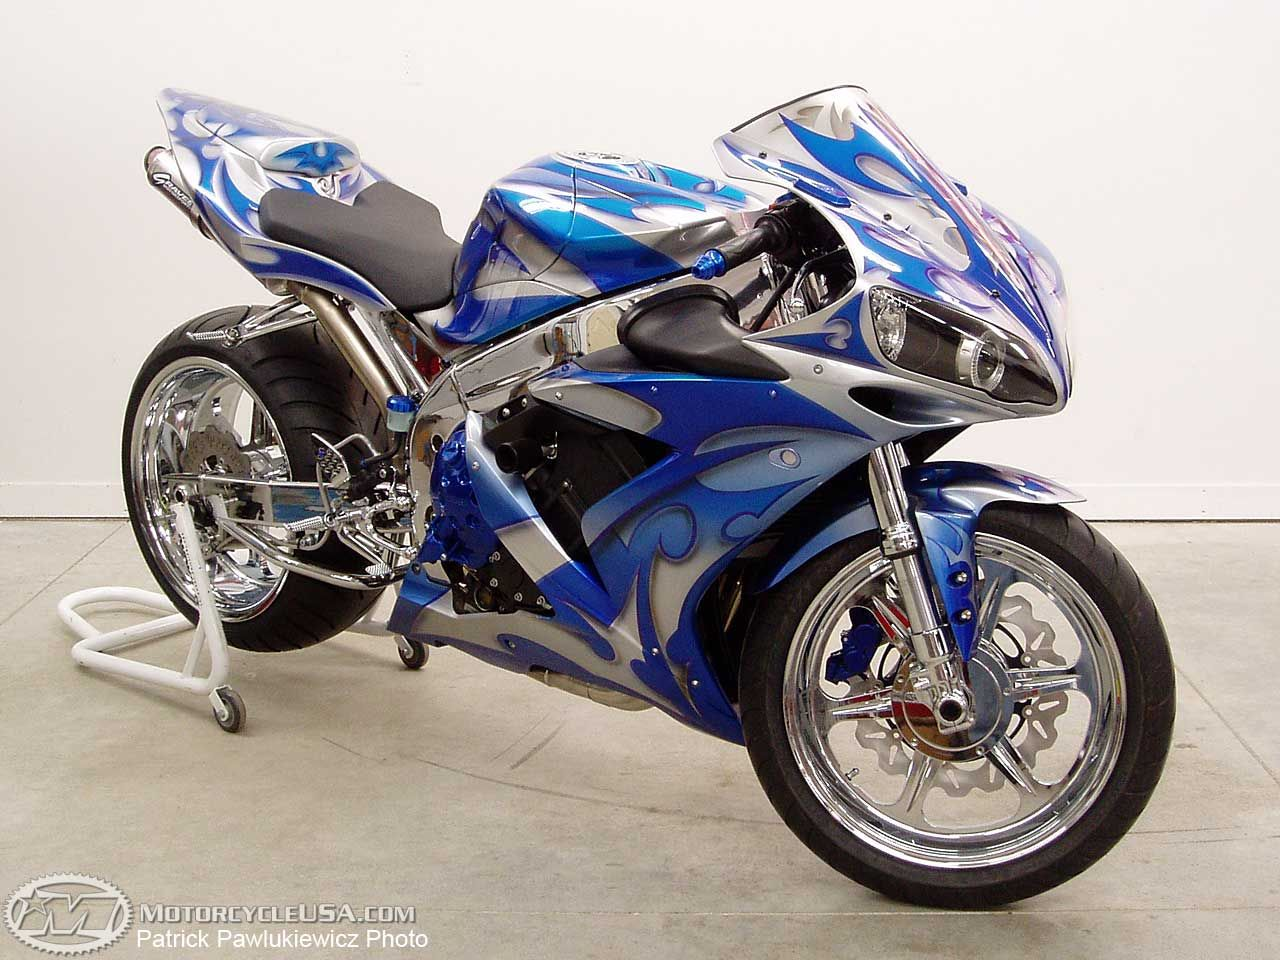 motorcycle sportbikes We first profiled Patrick